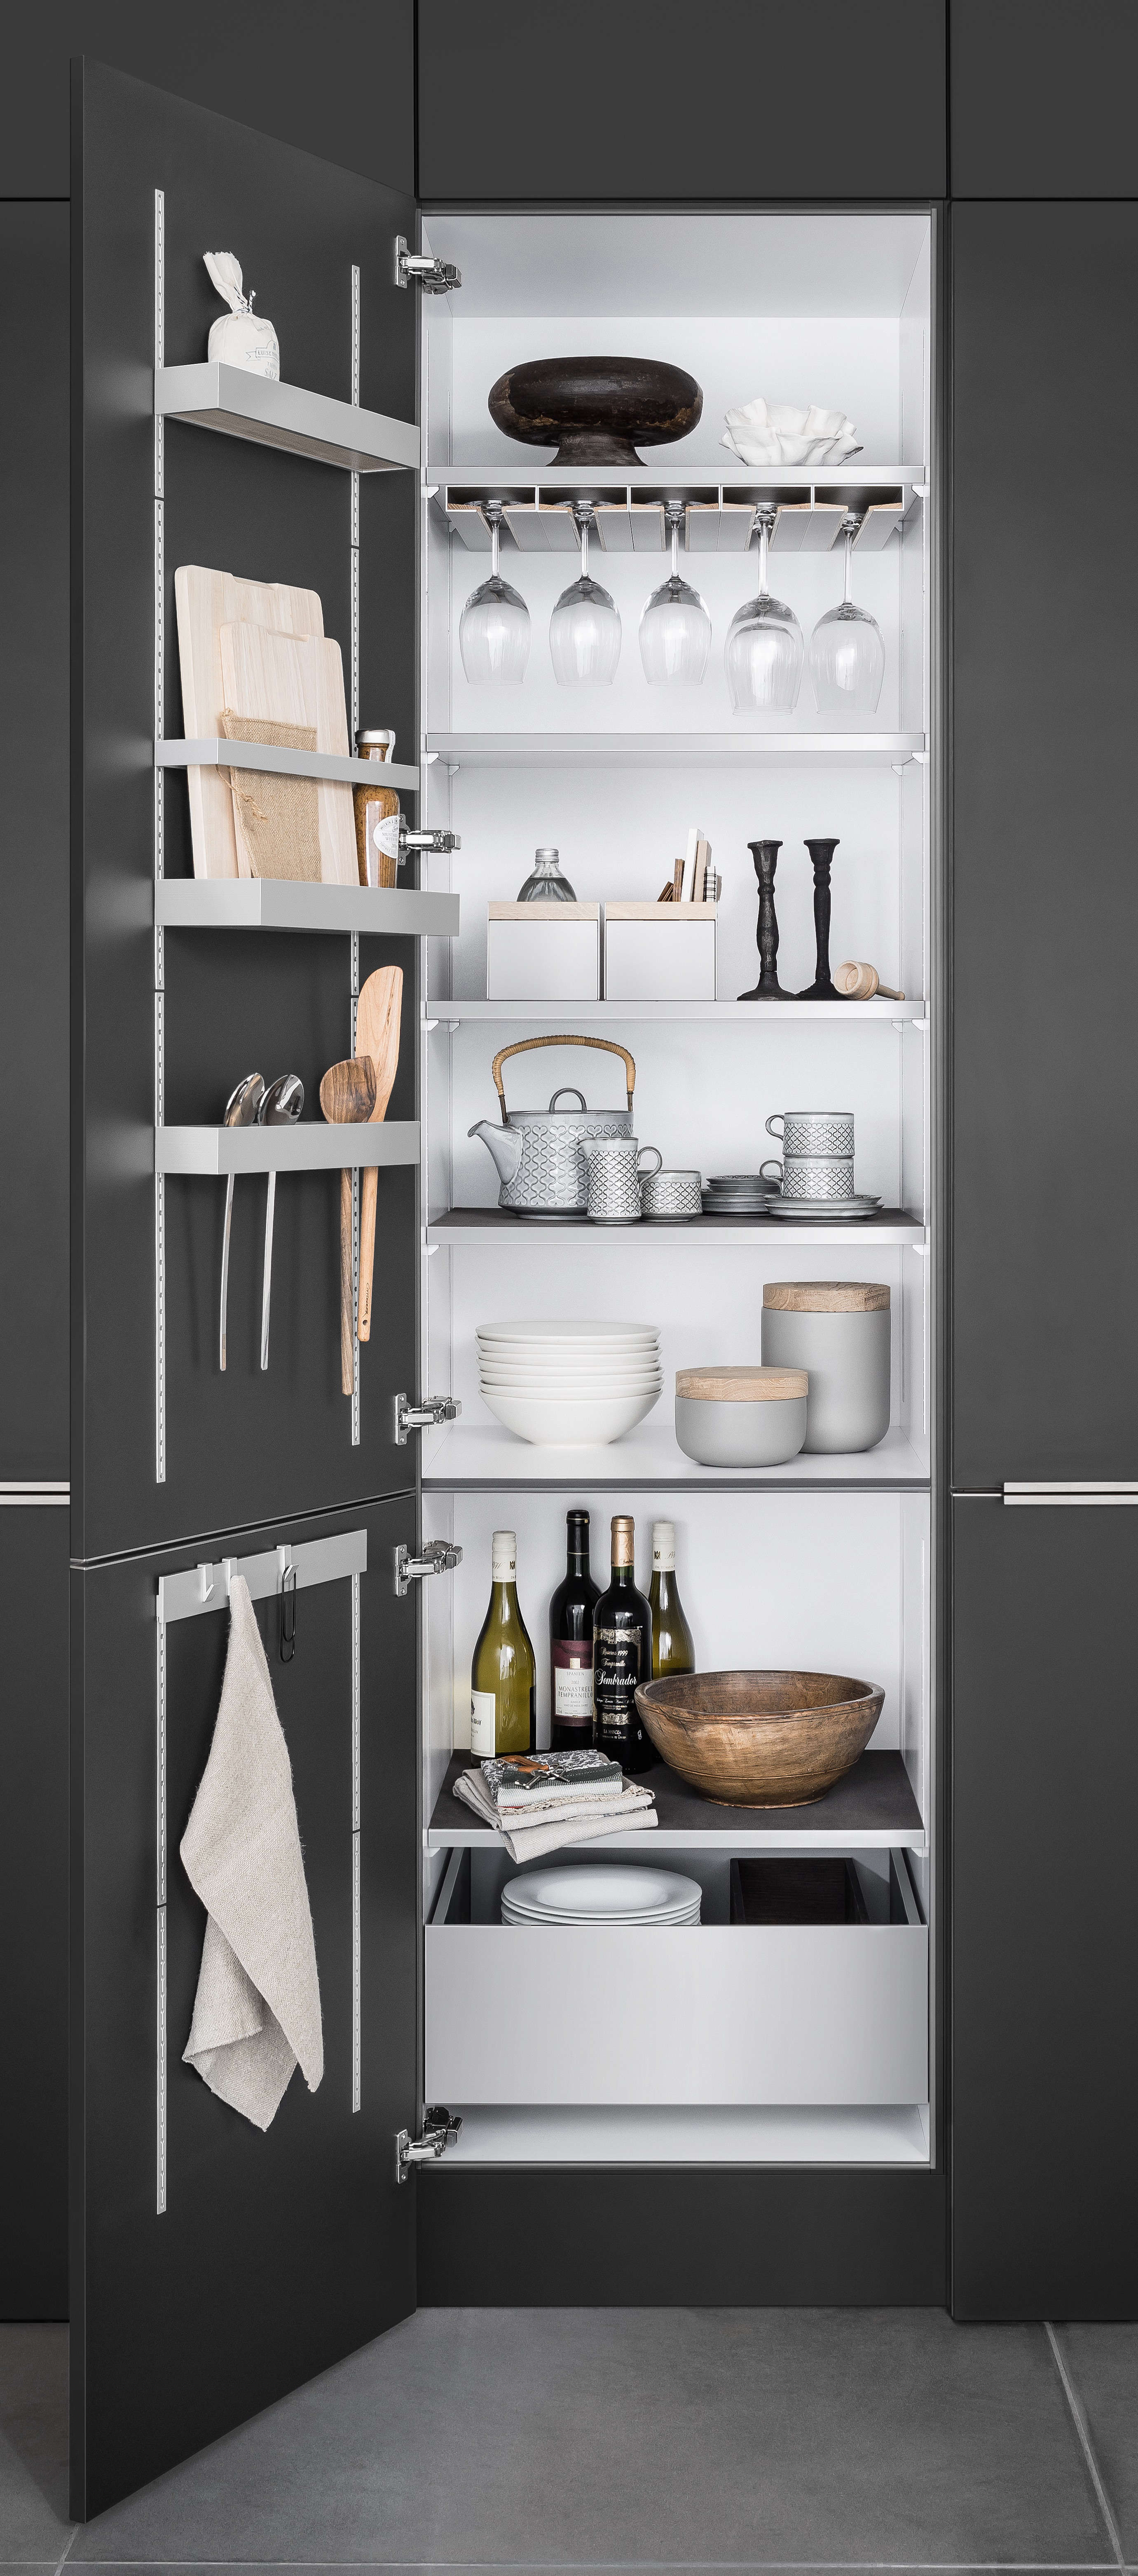 Space-Saving Idea to Steal from a High-End German Kitchen System